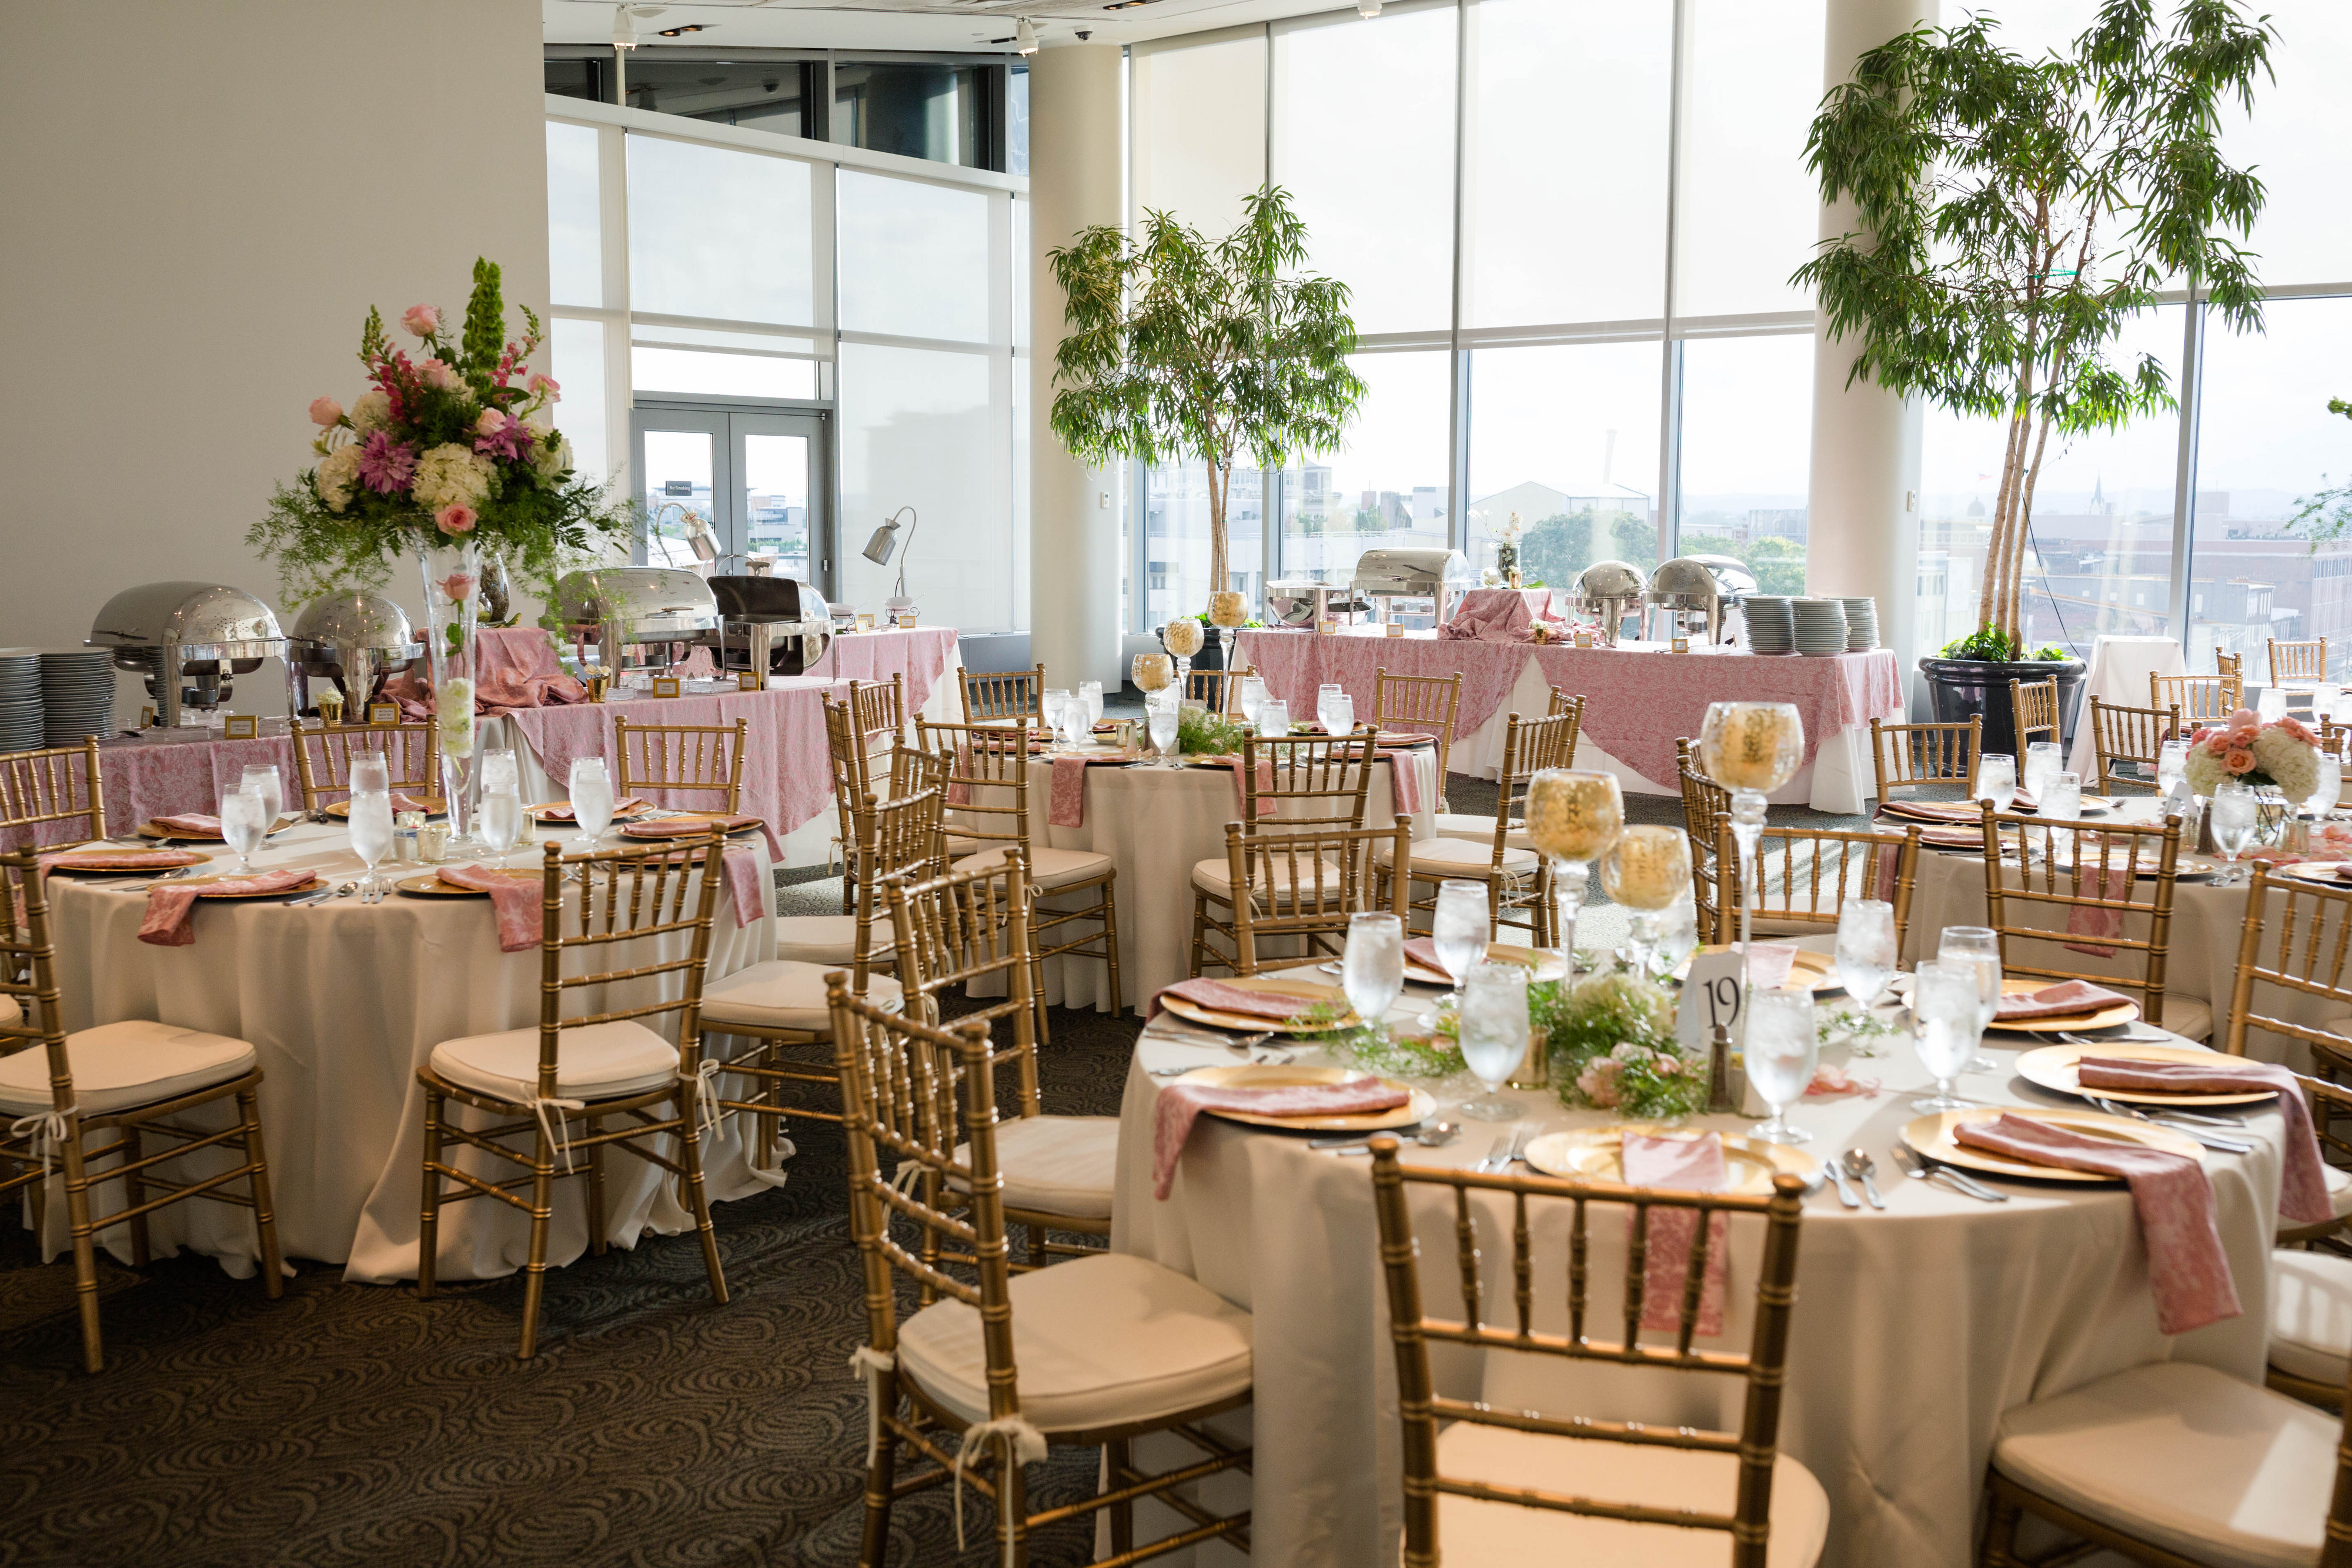 chair rental louisville ky bedroom victorian plan your wedding muhammad ali center be great do things packages are available for both ceremony reception and only